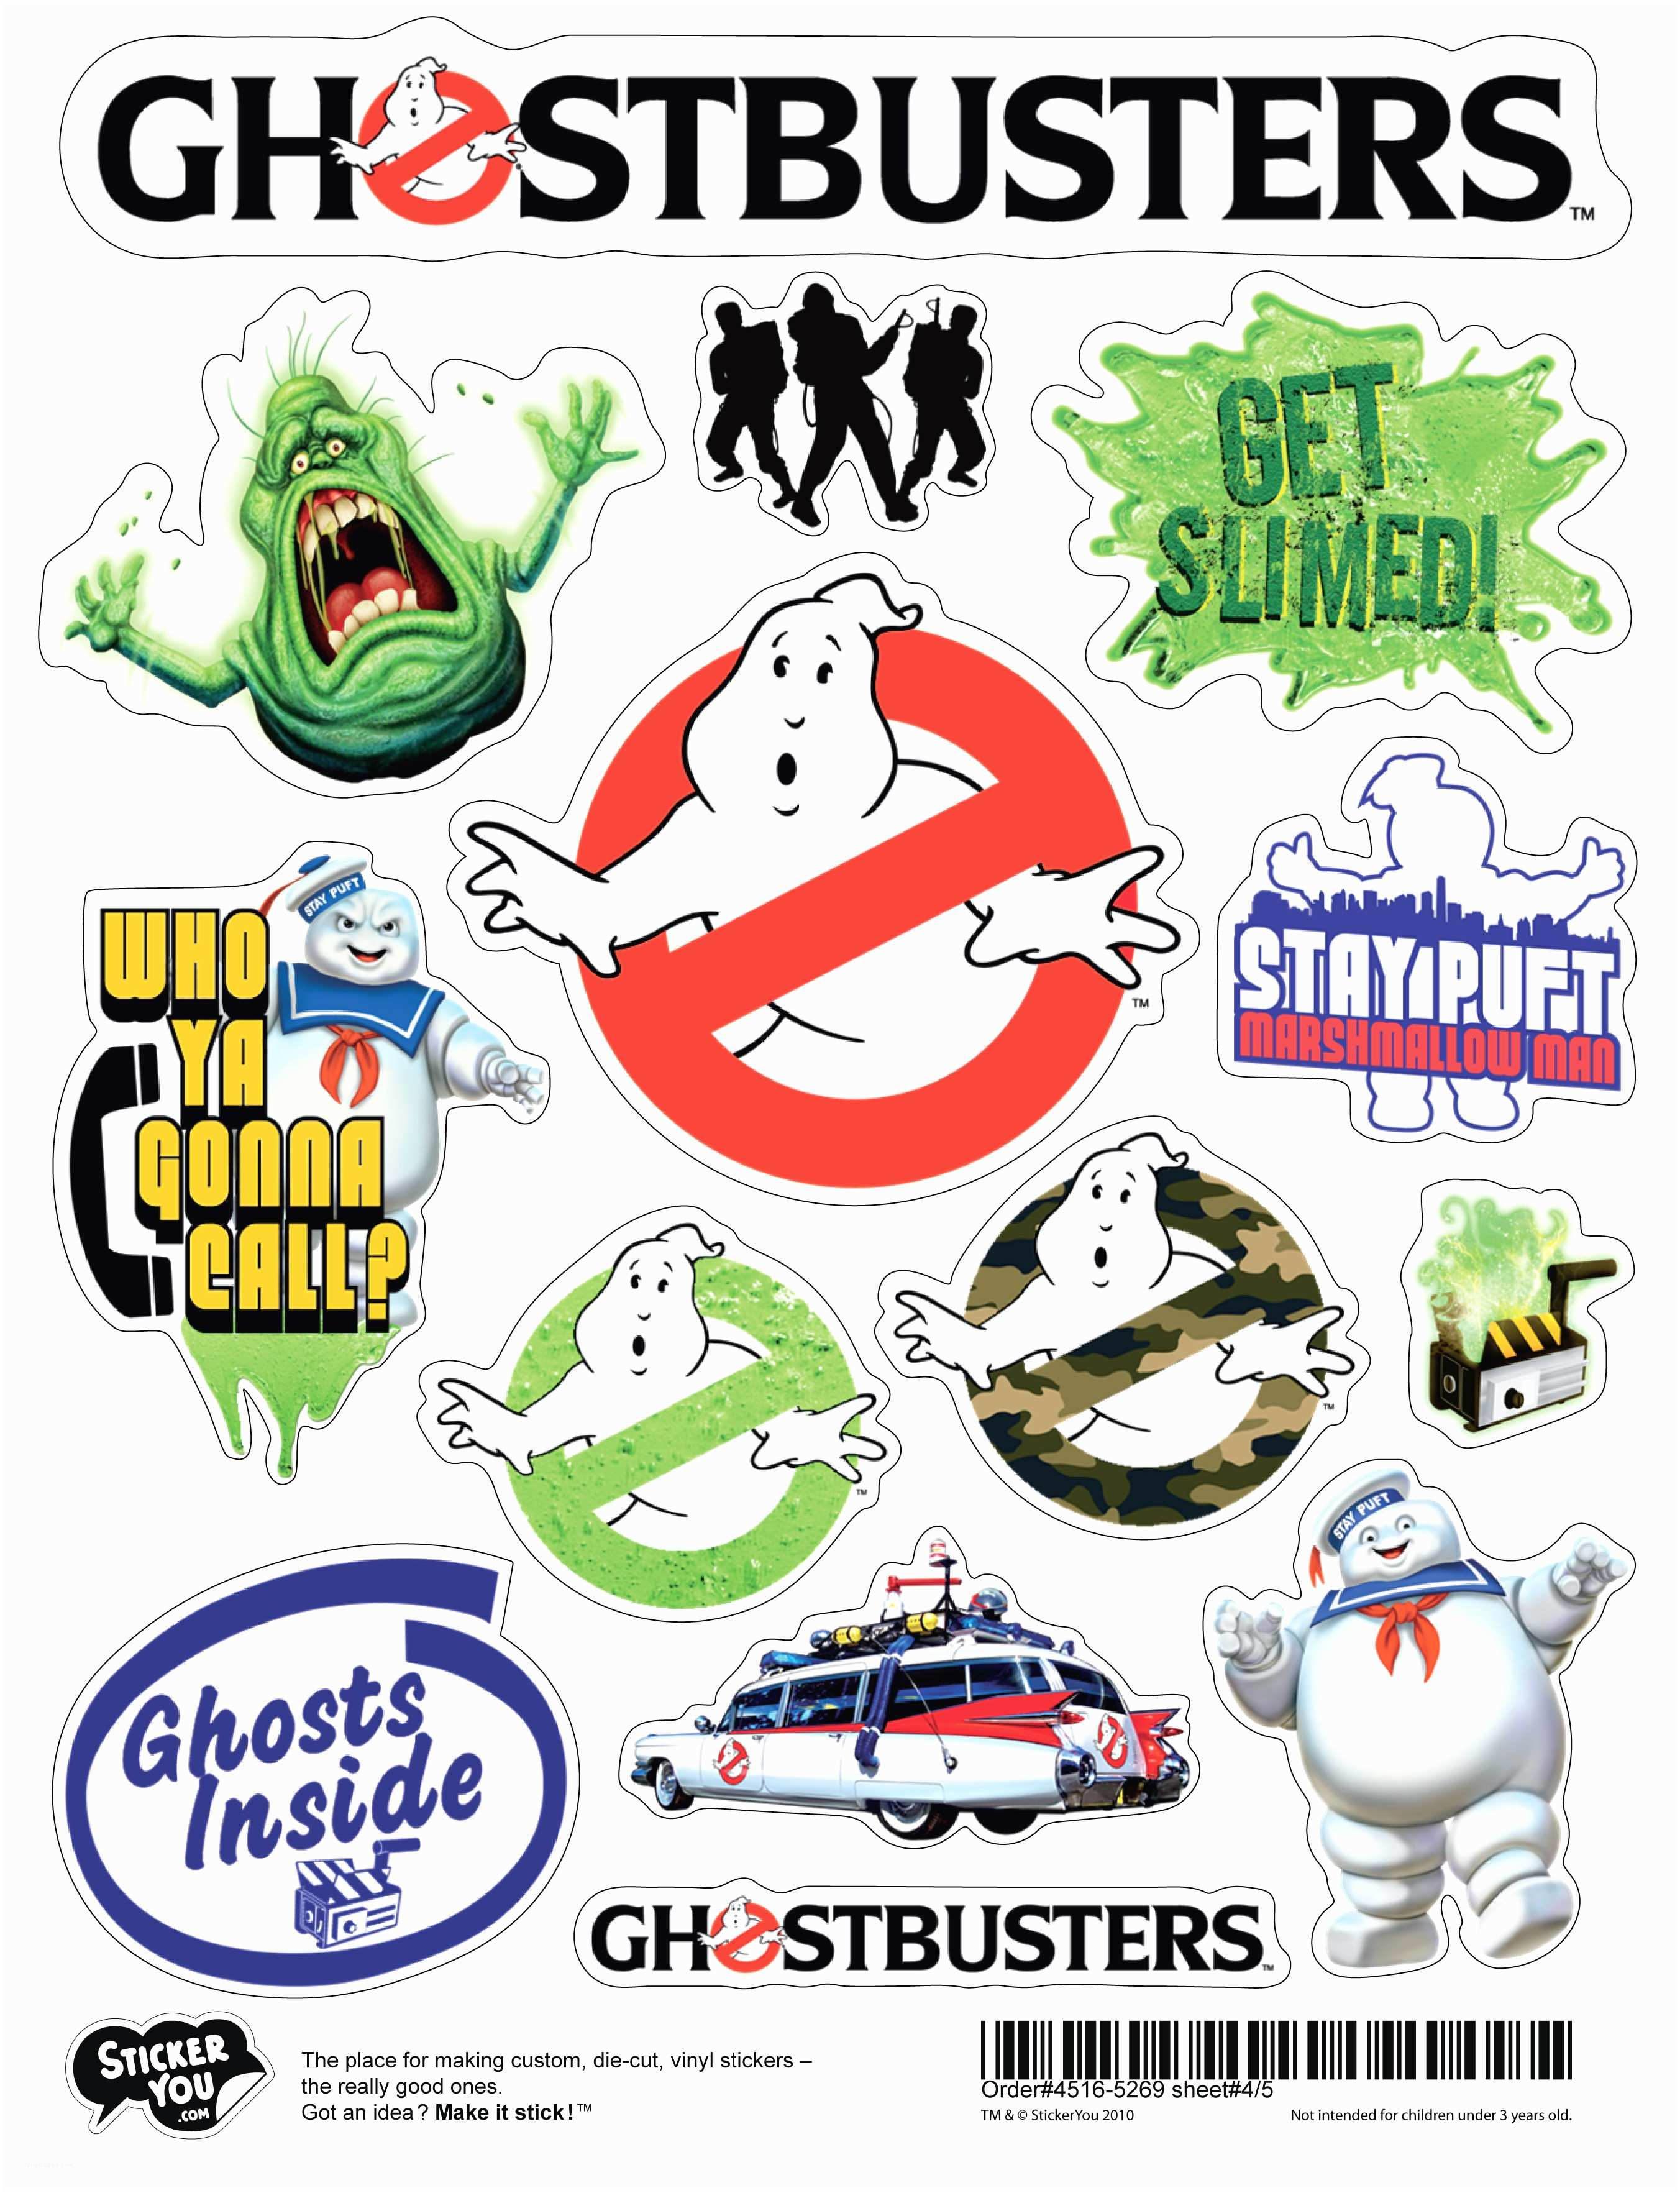 Ghostbusters Party Invitations Create Own Ghostbusters Birthday Invitations Free Ideas